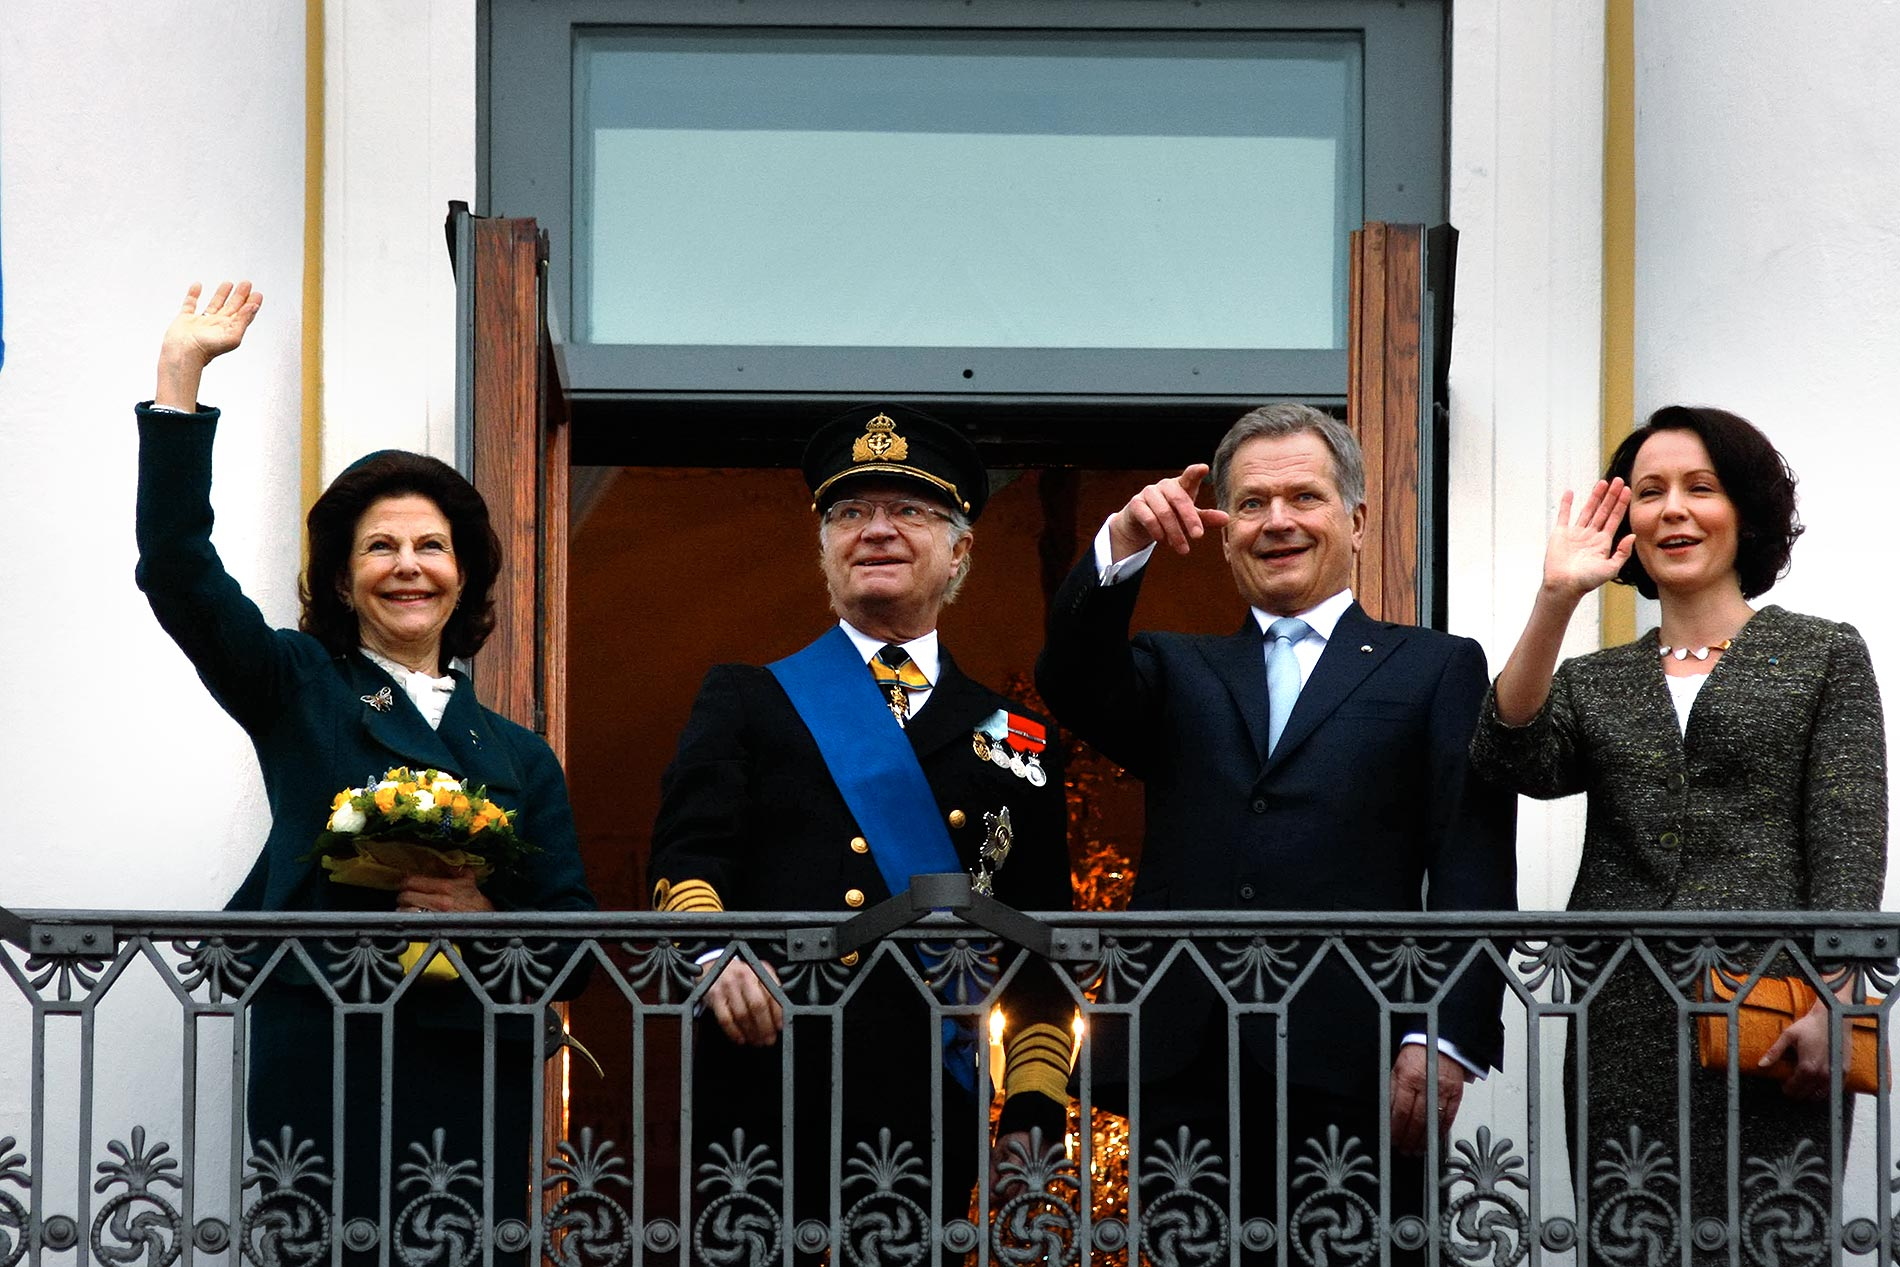 H.M. Queen Silvia and King Carl XVI Gustaf of Sweden and the Finnish presidential couple, President Sauli Niinistö and Mrs Jenni Haukio, waving from the balcony of the Presidential Palace to the crowd of a few hundred standing on the Market Square in Helsinki, Finland on Tuesday, March 3 2015. Picture: Tony Öhberg for Finland Today